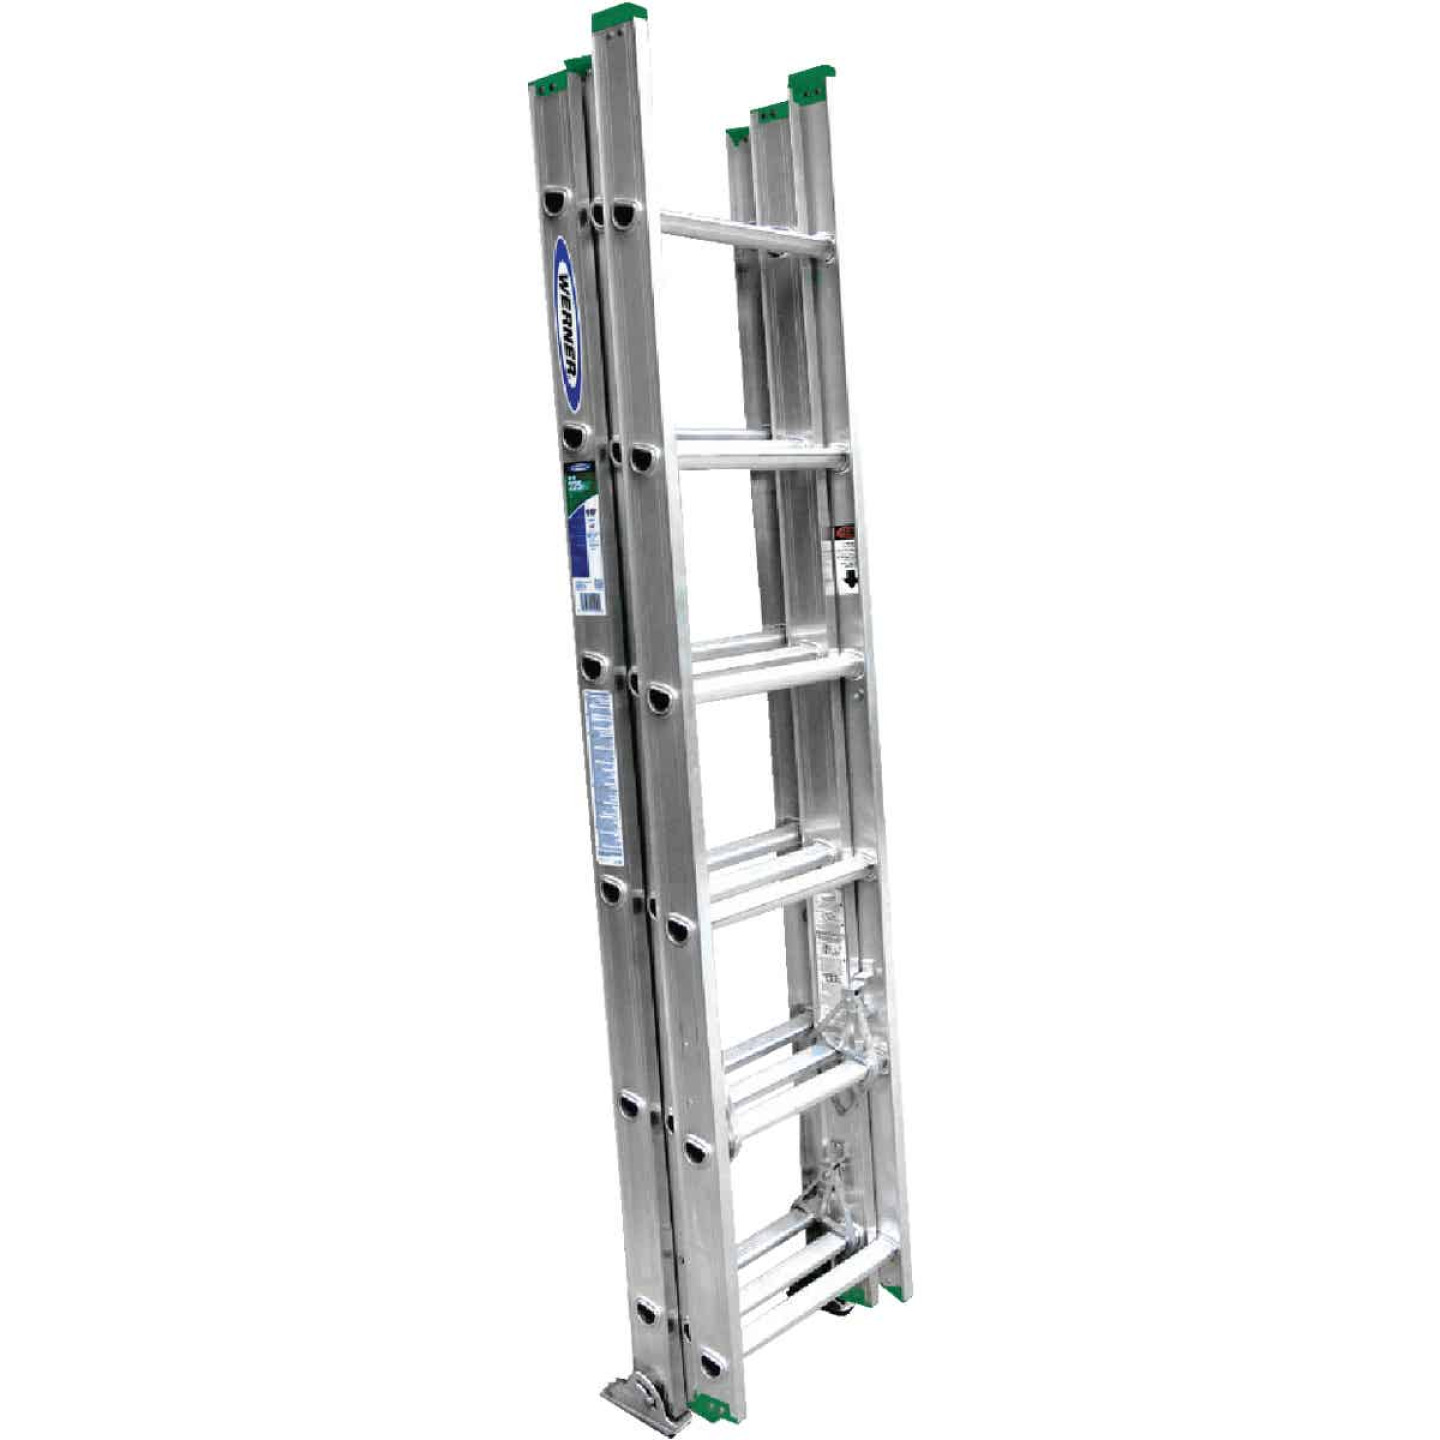 Werner 16 Ft. Compact Aluminum Extension Ladder with 225 Lb. Load Capacity Type II Duty Rating Image 5